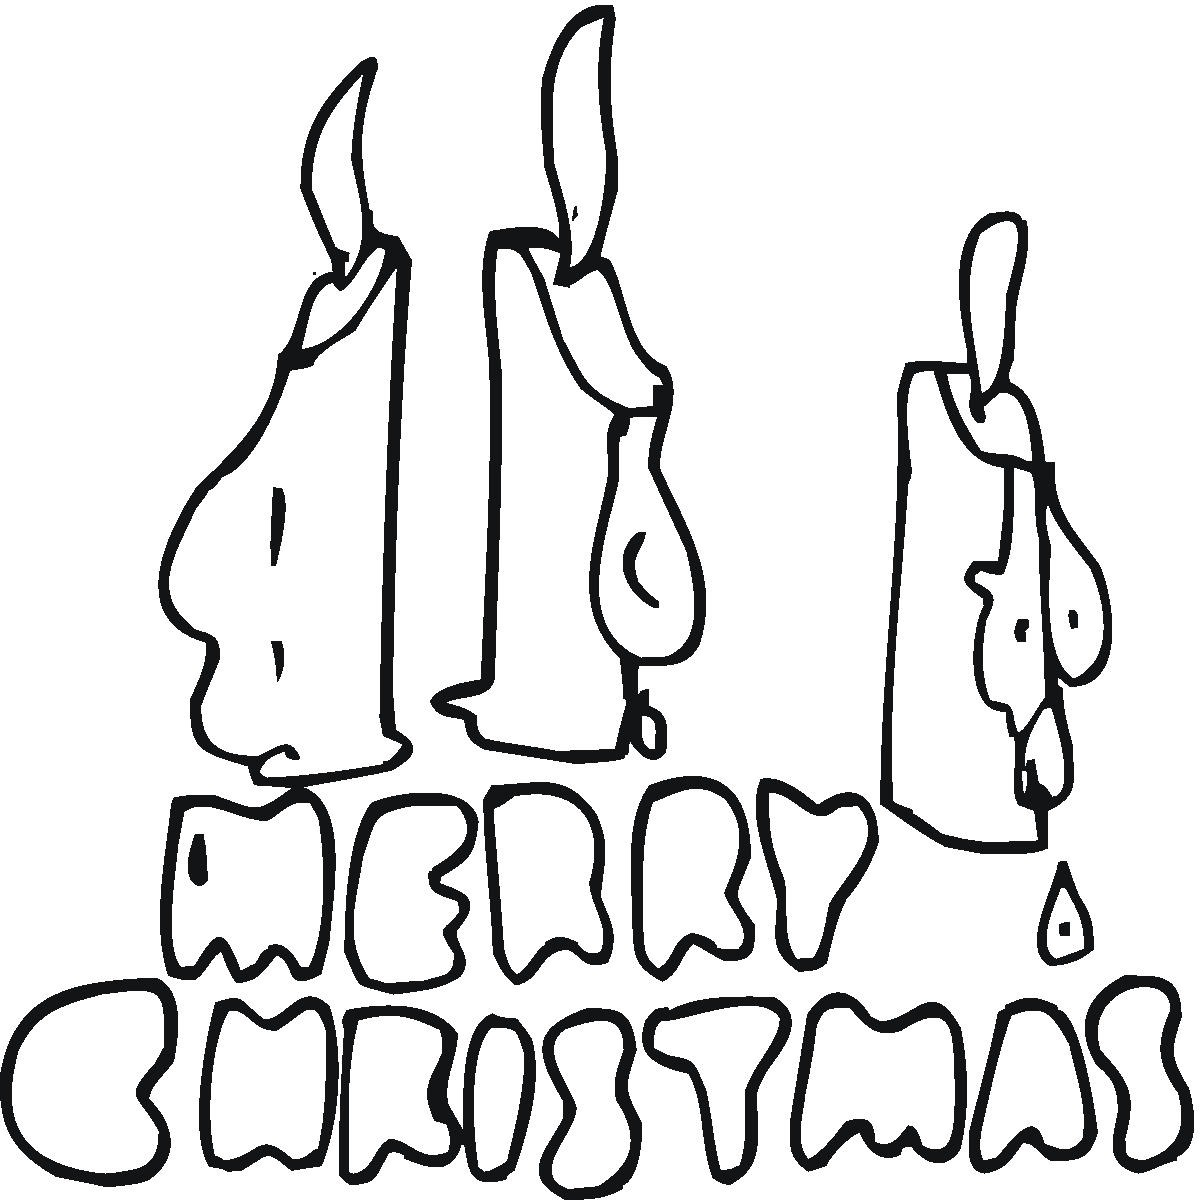 coloring page from santas workshopws merry christmas